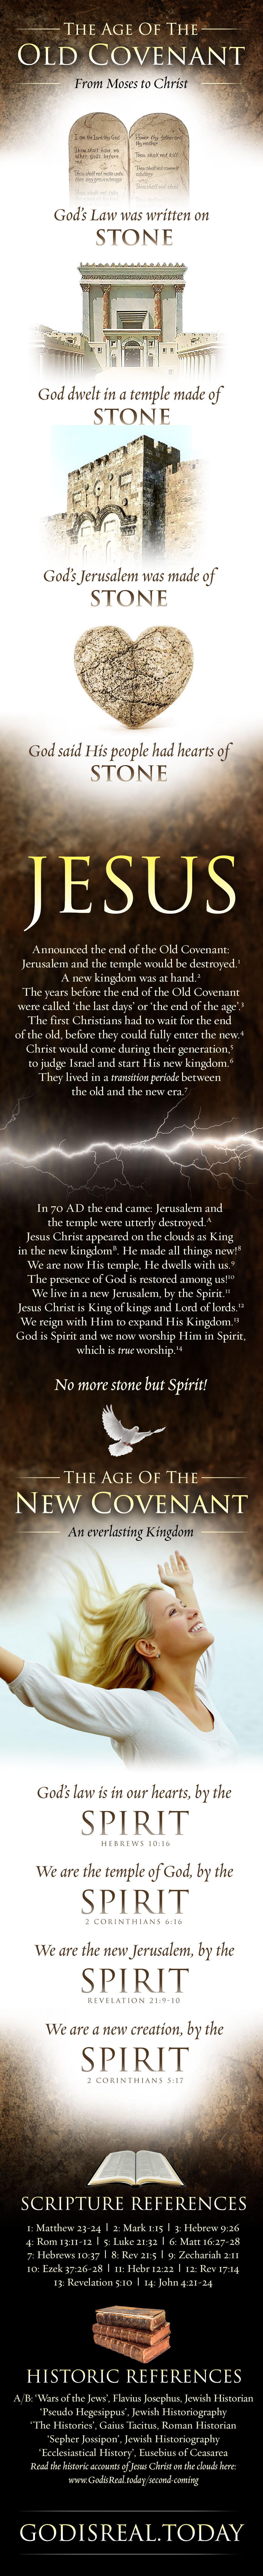 overview old to new covenant